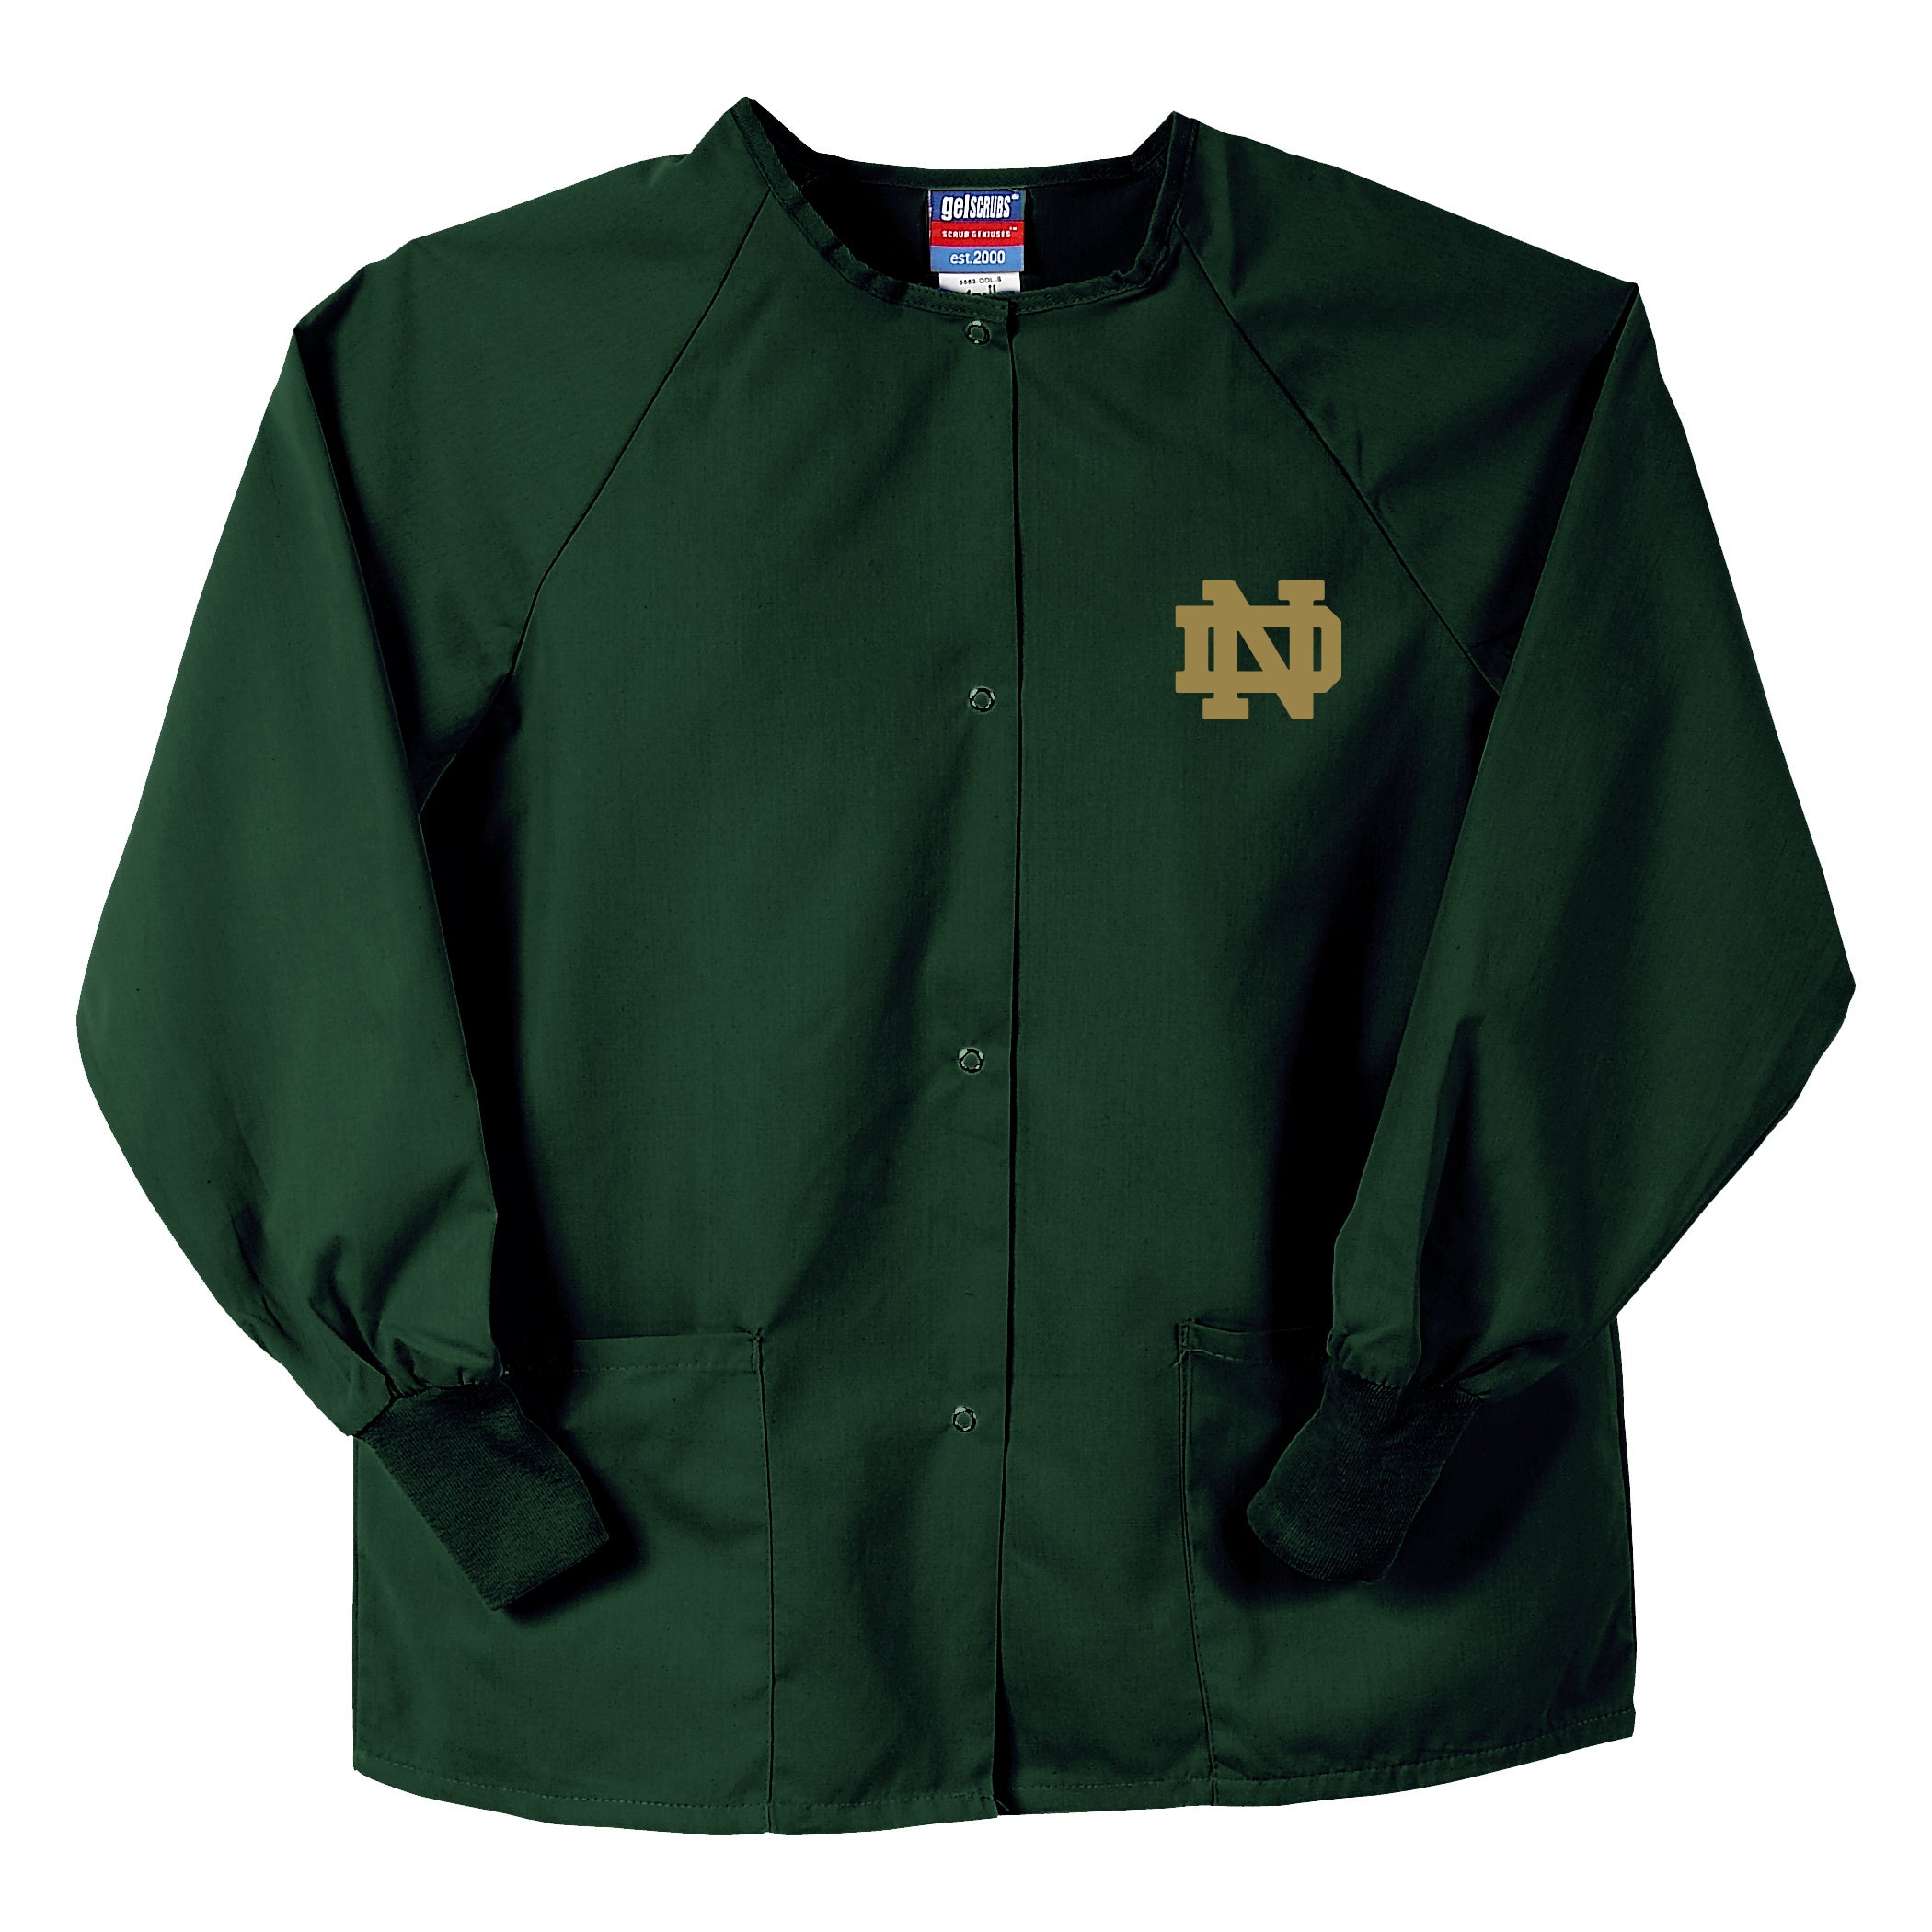 Gelscrubs Hunter Unisex NCAA Notre Dame Fighting Irish Nurse Jacket - Thumbnail 0